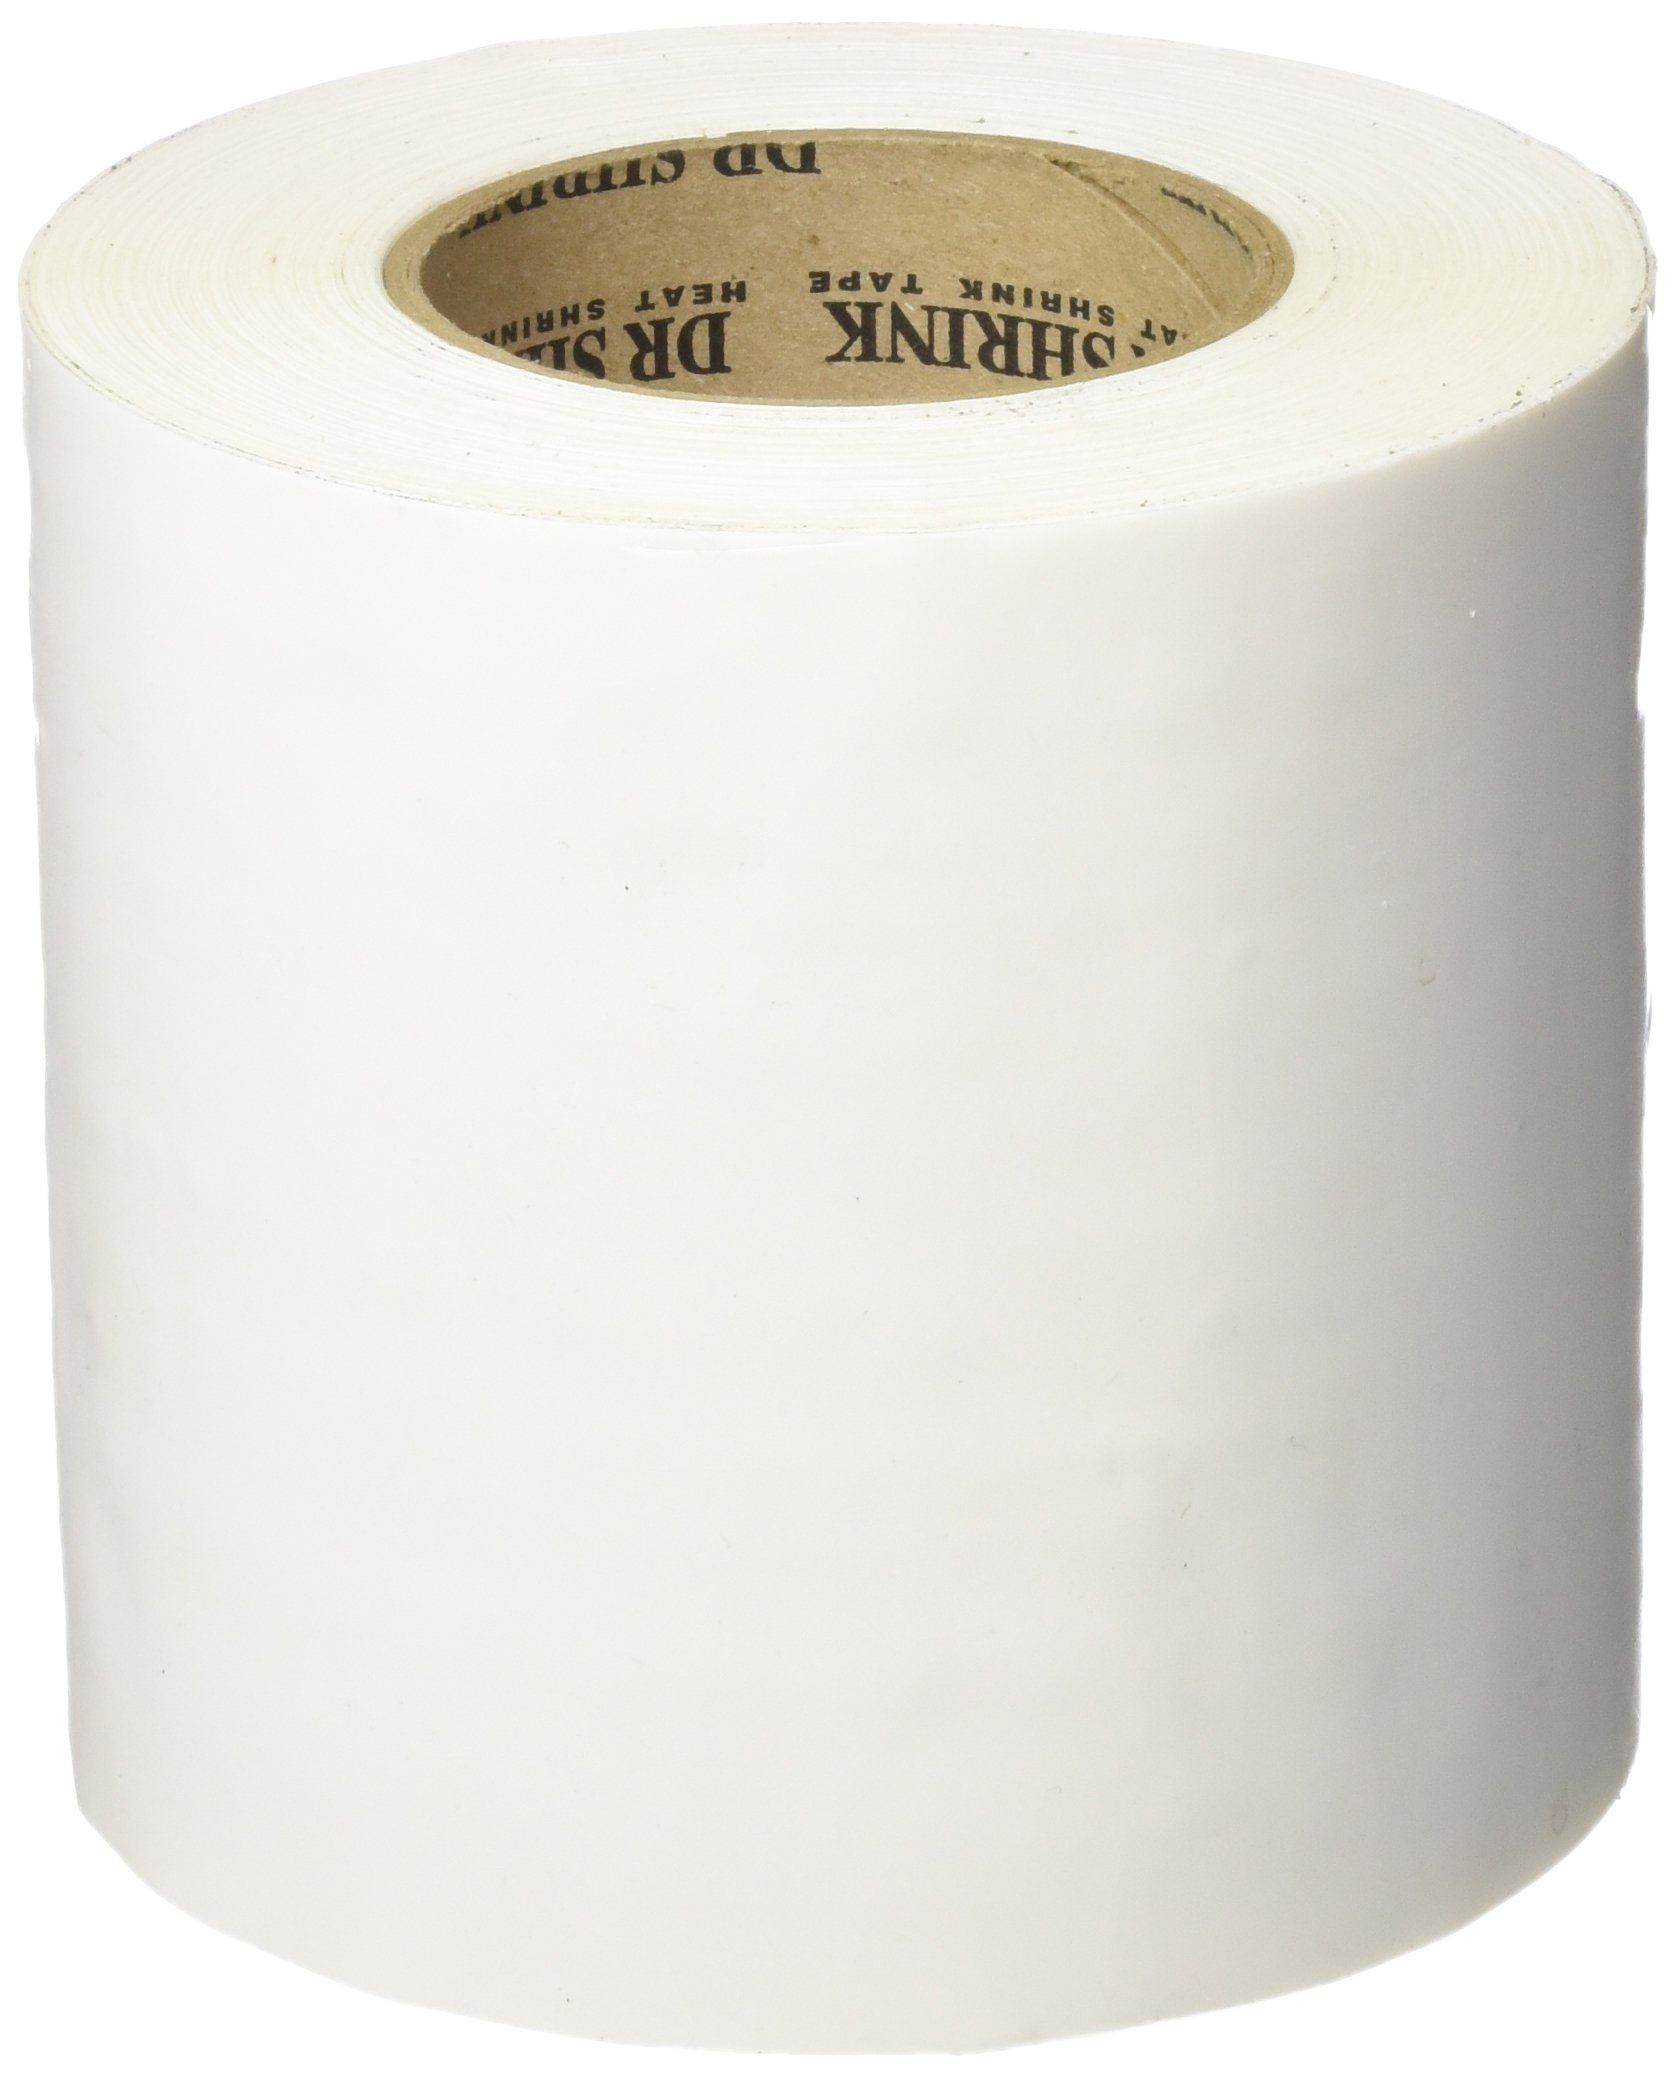 Dr Shrink Ds 706w White 6 X 180 Shrink Tape Read More Reviews Of The Product By Visiting The Link On The Image This Tape Tape Reading Heat Shrink Wrap